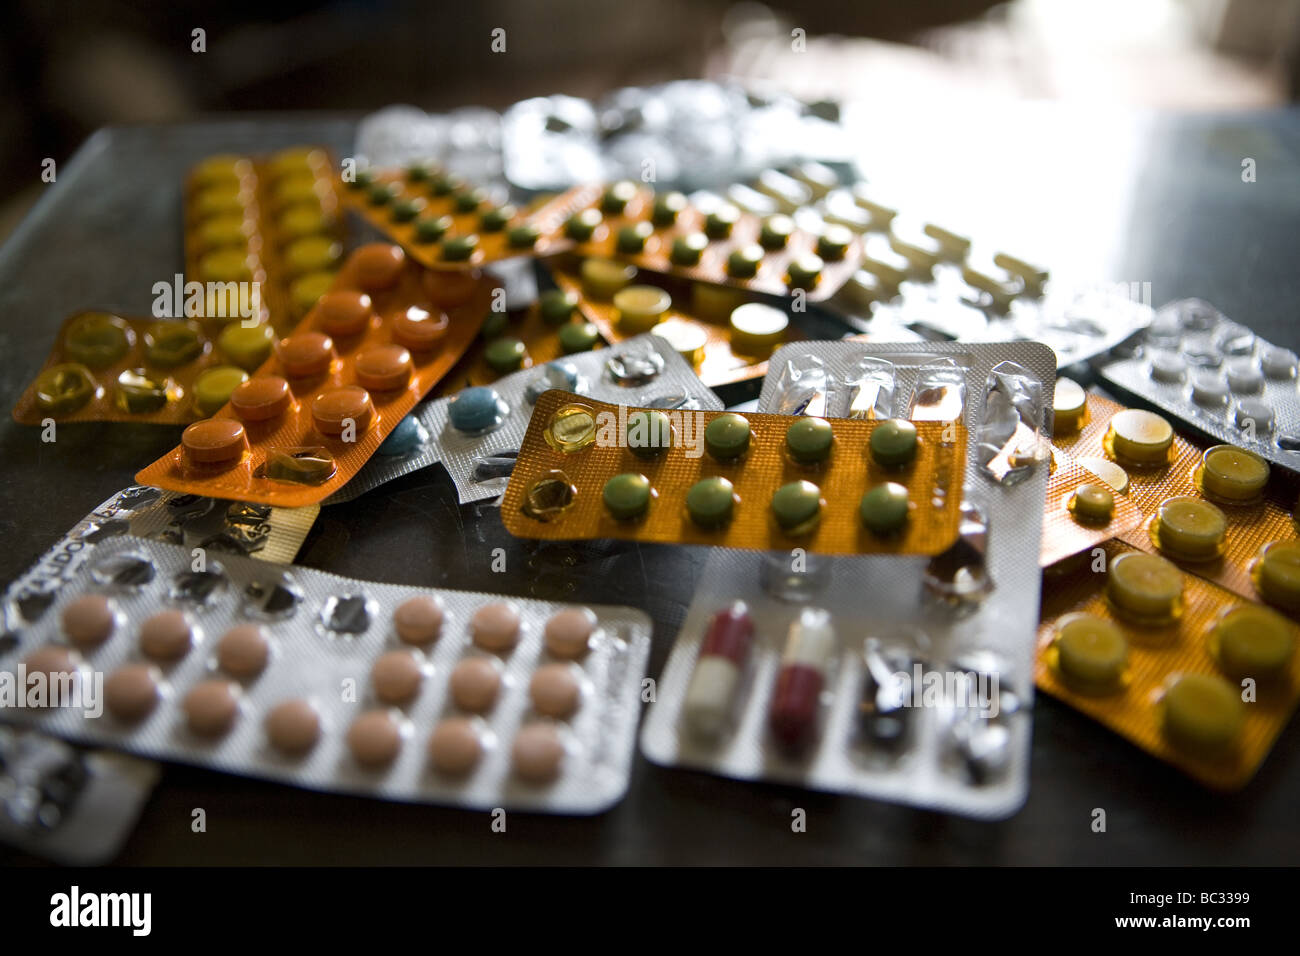 Pharmaceutical drugs at a home in Havana. - Stock Image